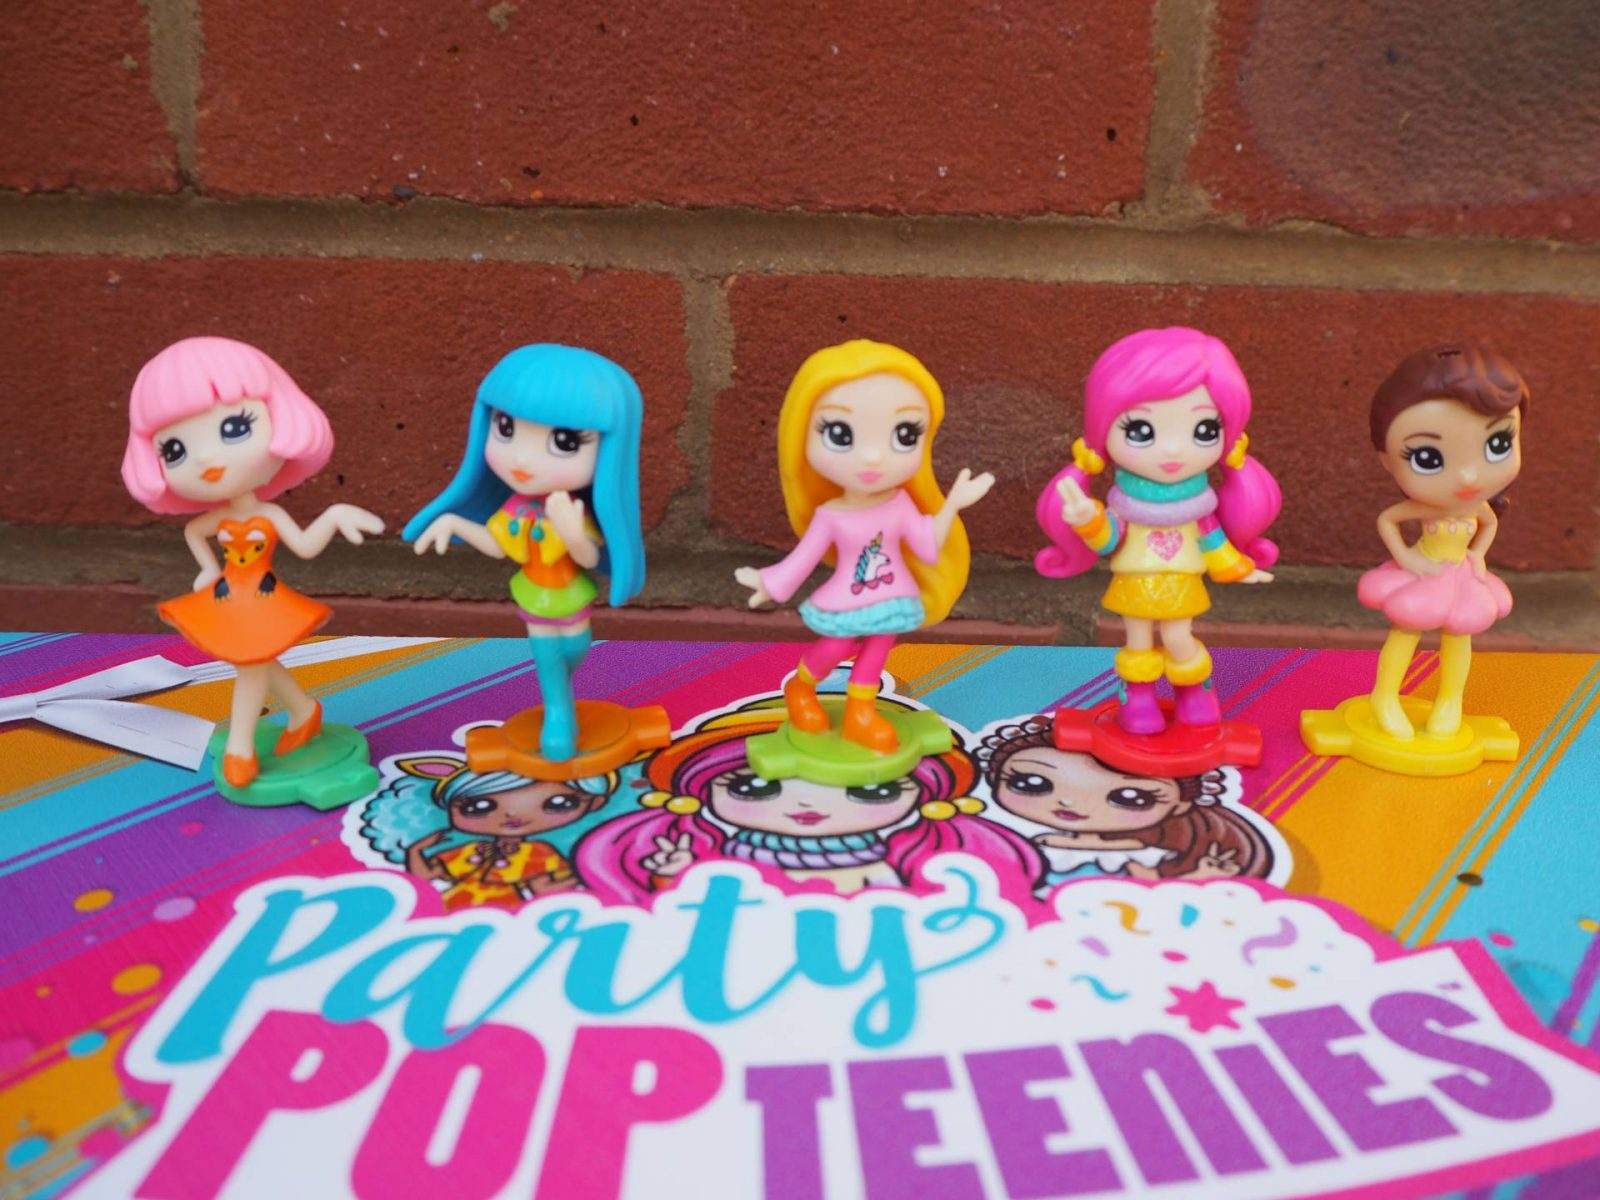 Party Popteenies…When Everyday's A Party!